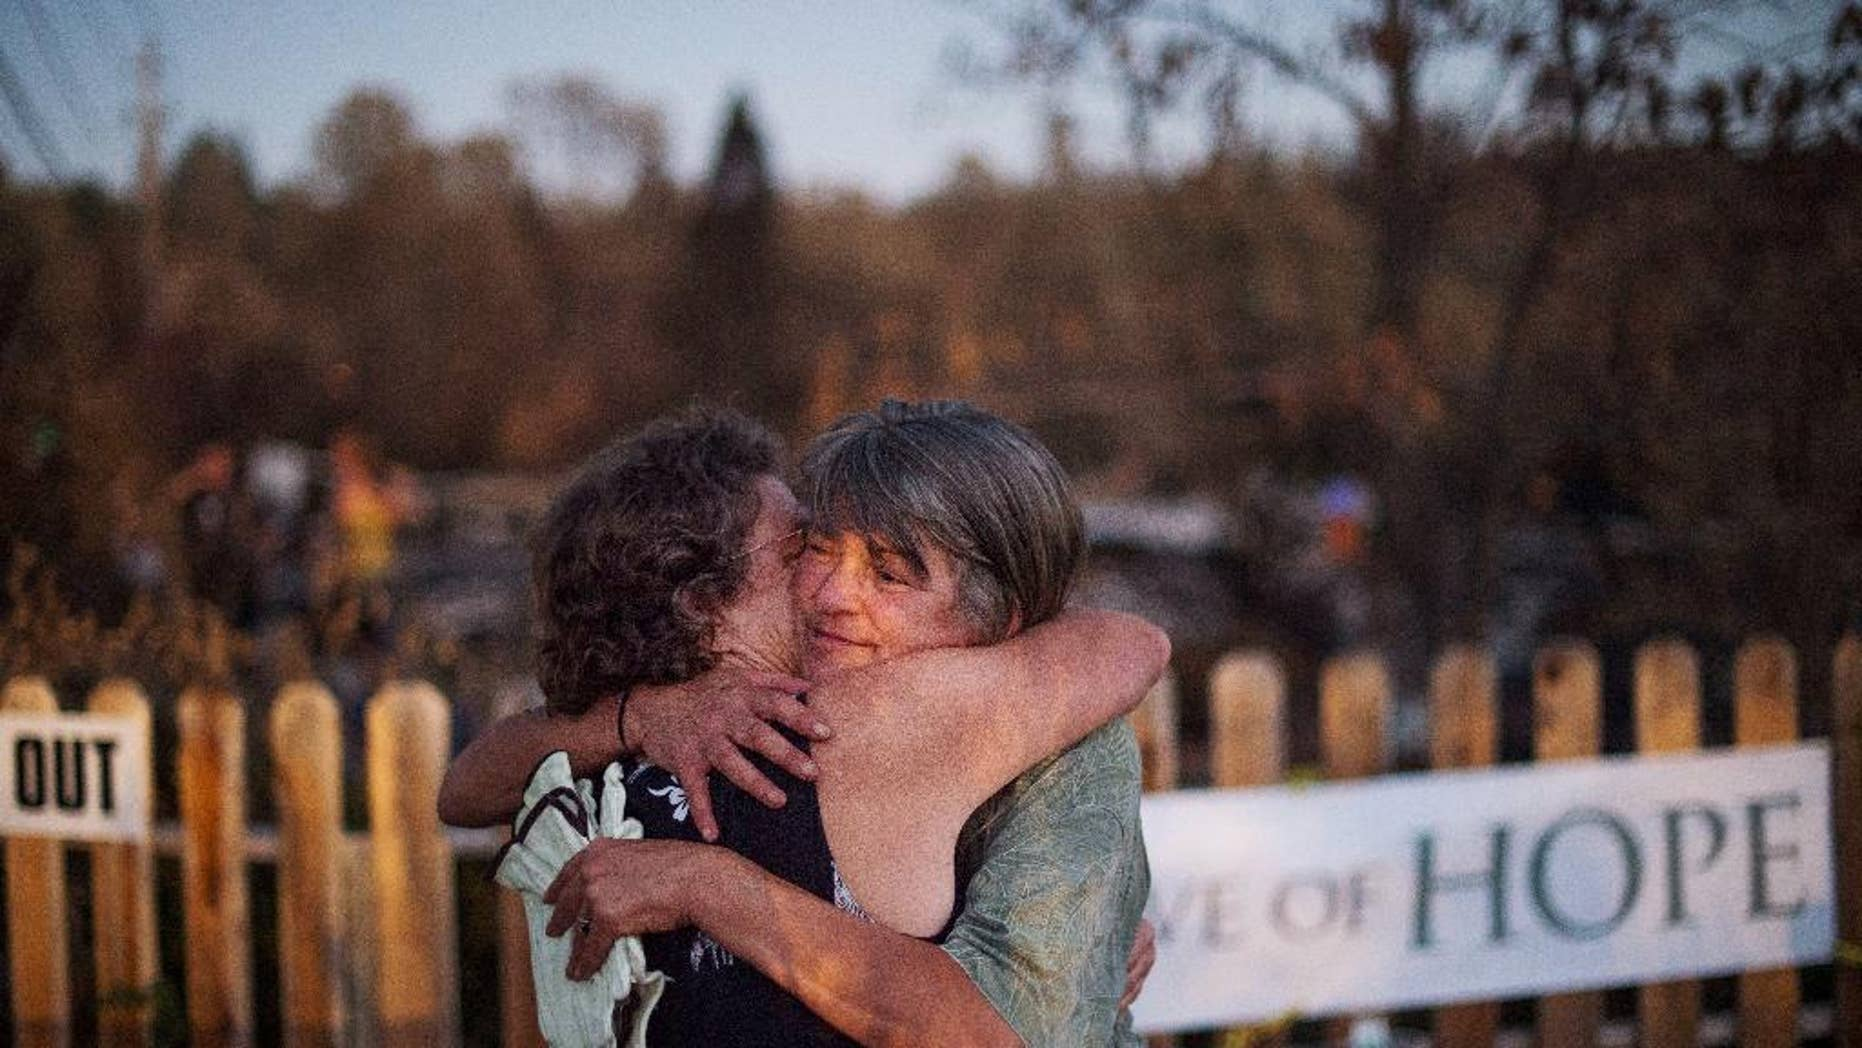 Sharon Dawson, right, who lost her home in a wildfire, embraces a friend while visiting her Middletown, Calif., property on Monday, Sept. 21, 2015. Gov. Jerry Brown requested a presidential disaster declaration on Monday, noting that more than 1,000 homes had been confirmed destroyed, with the number likely to go higher as assessment continues. (AP Photo/Noah Berger)